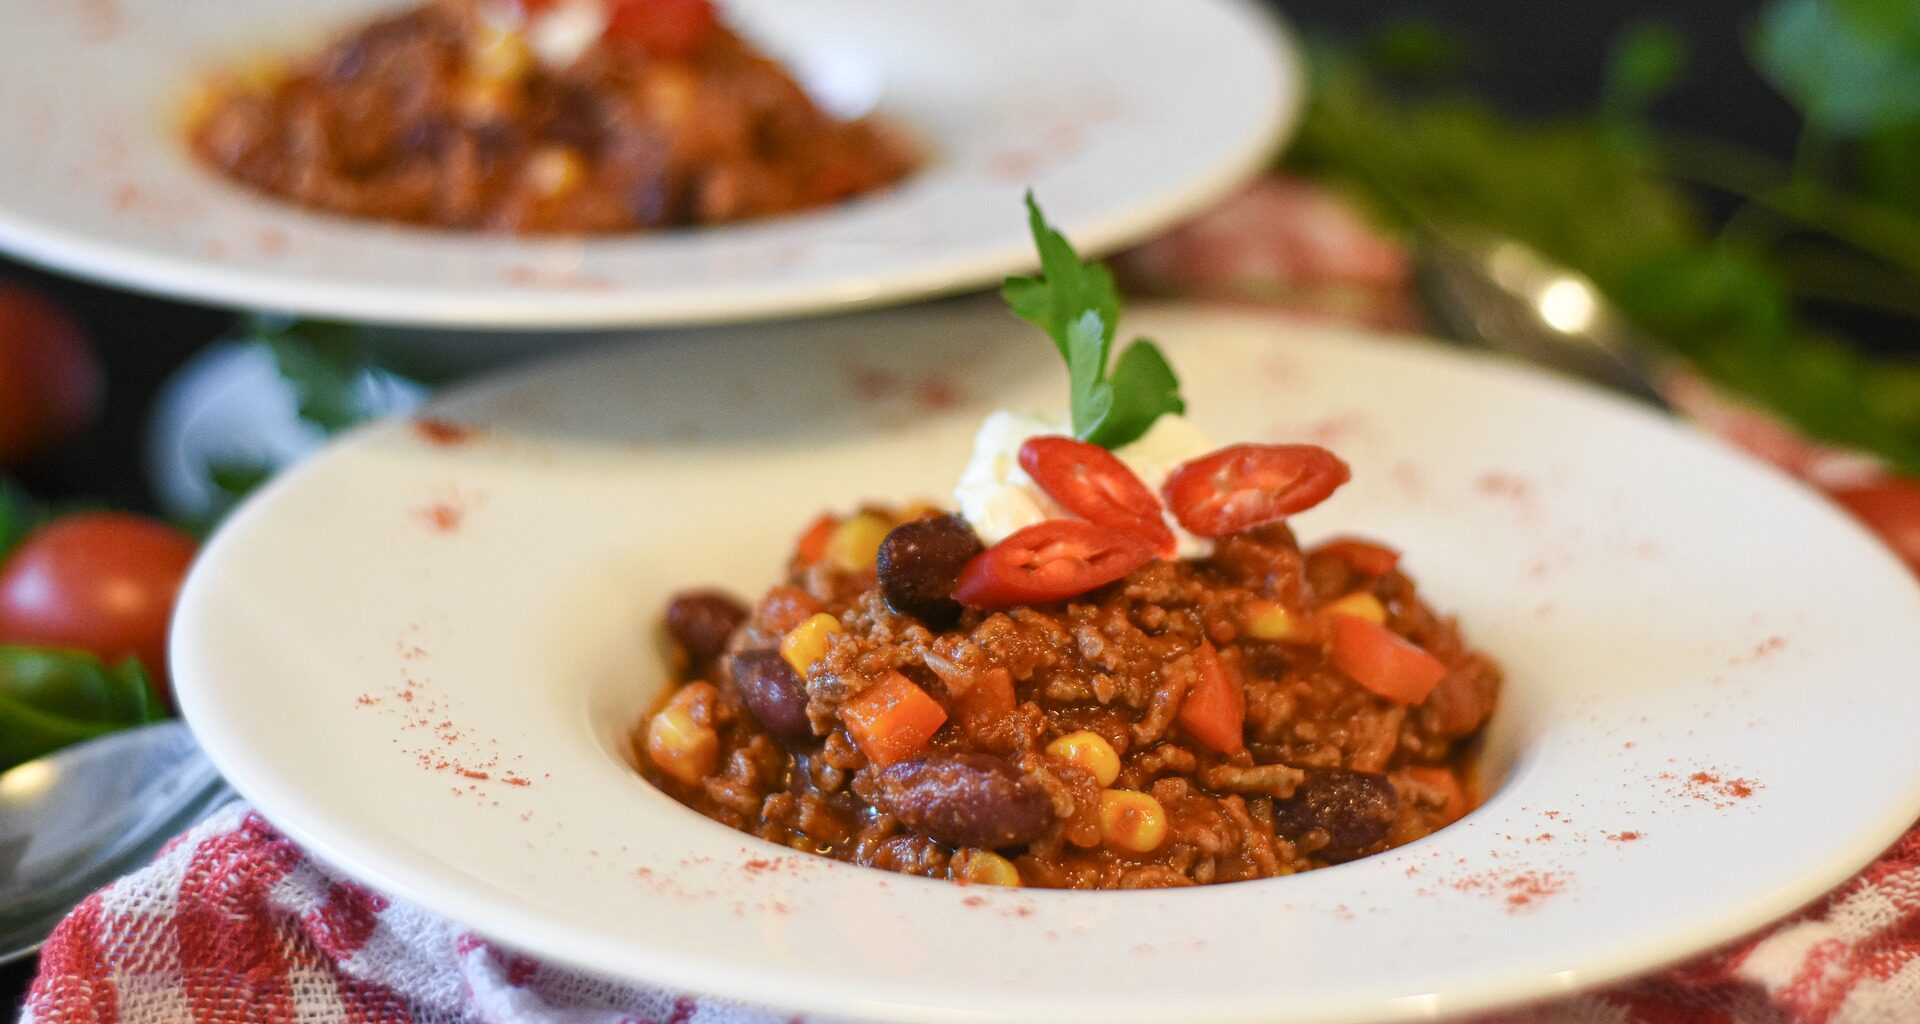 Best canned chili brands and the top recipes.